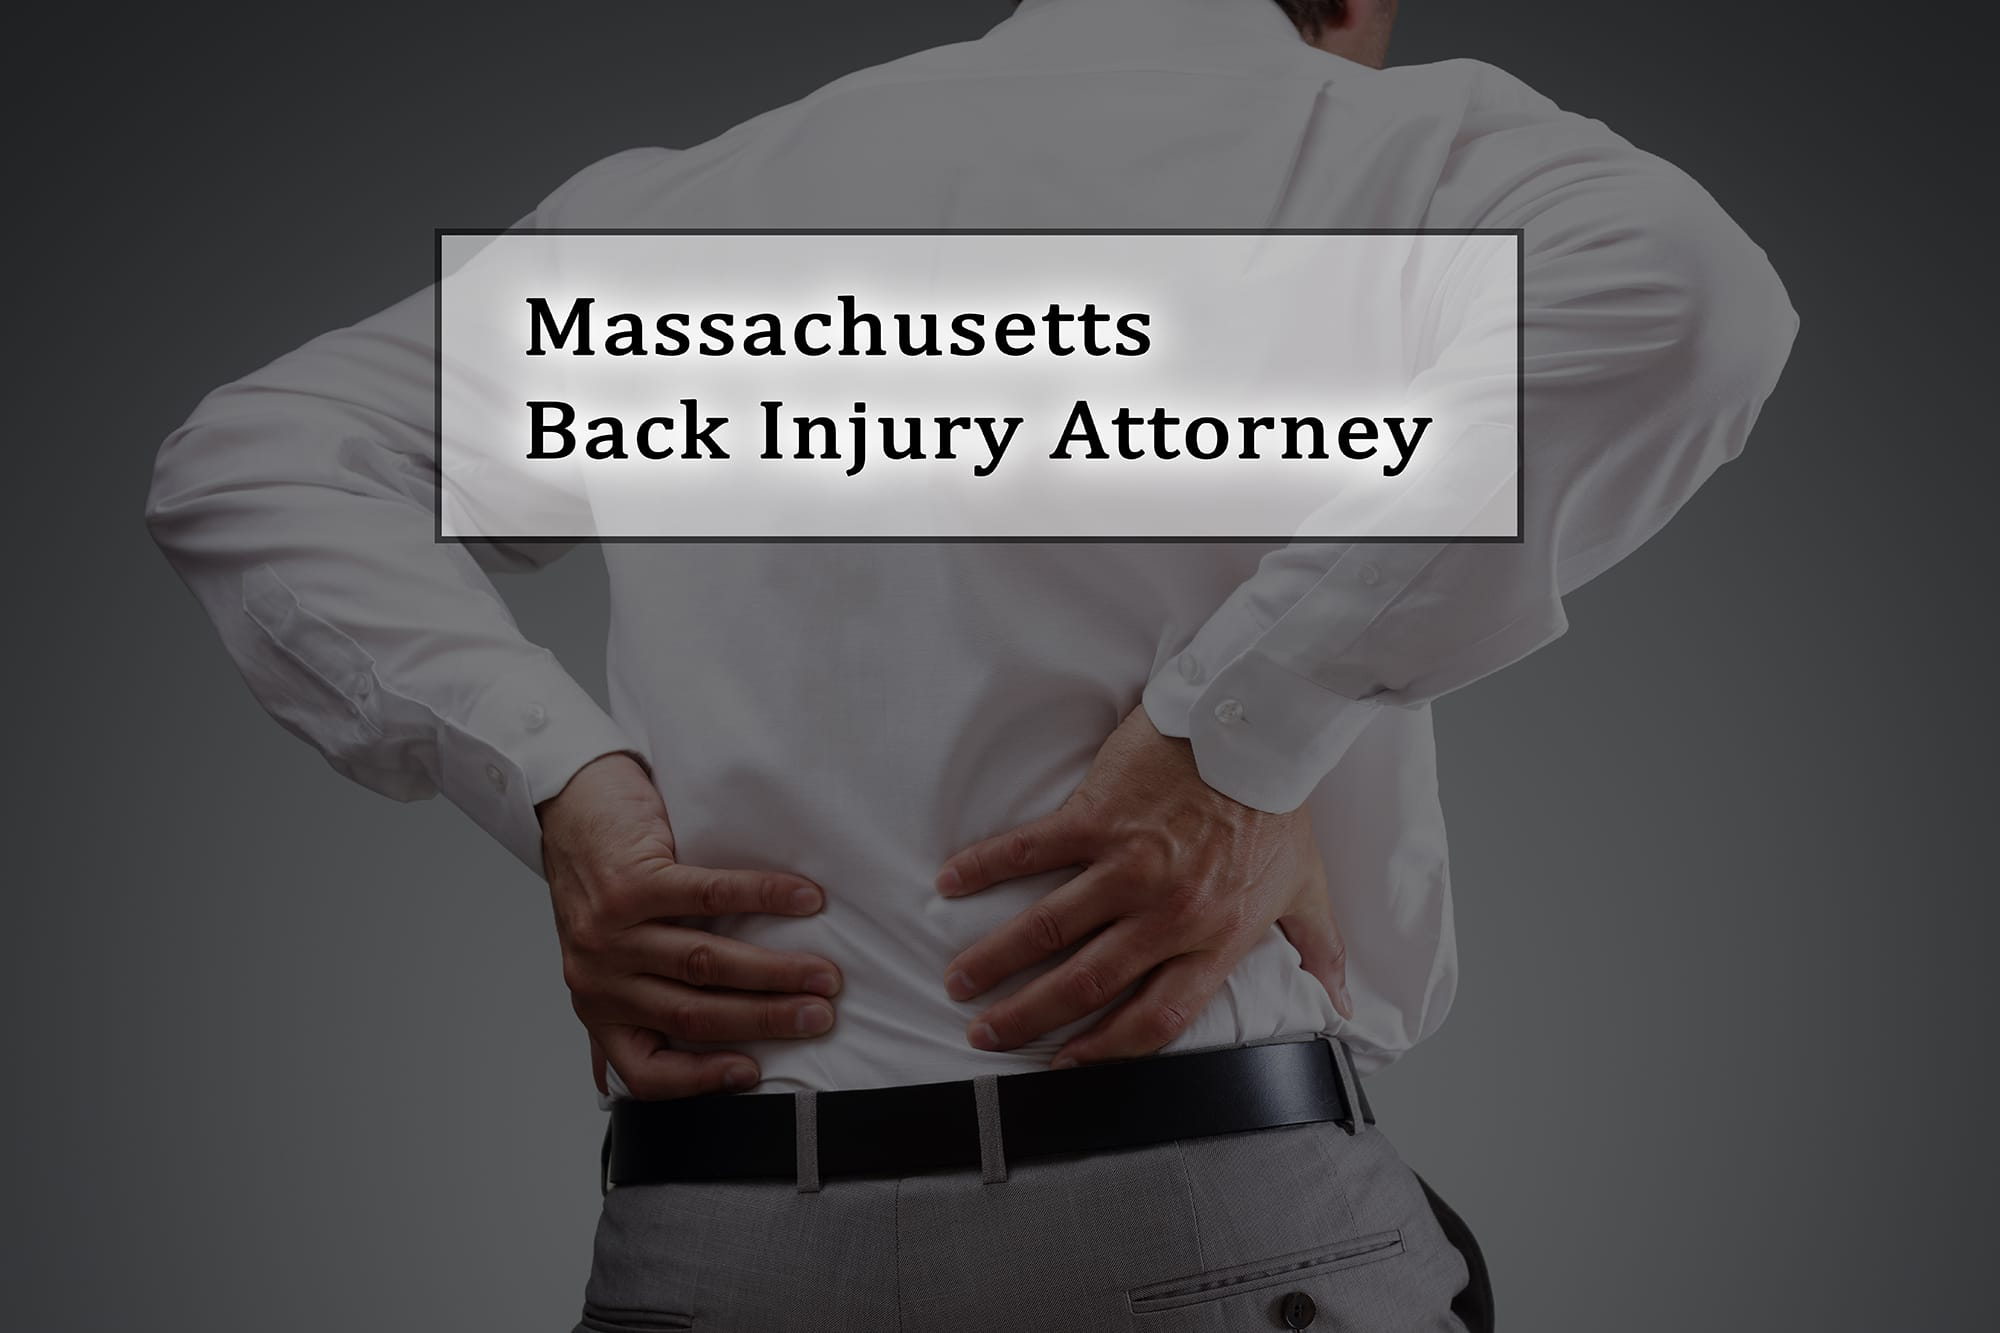 Massachusetts Back Injury Attorney